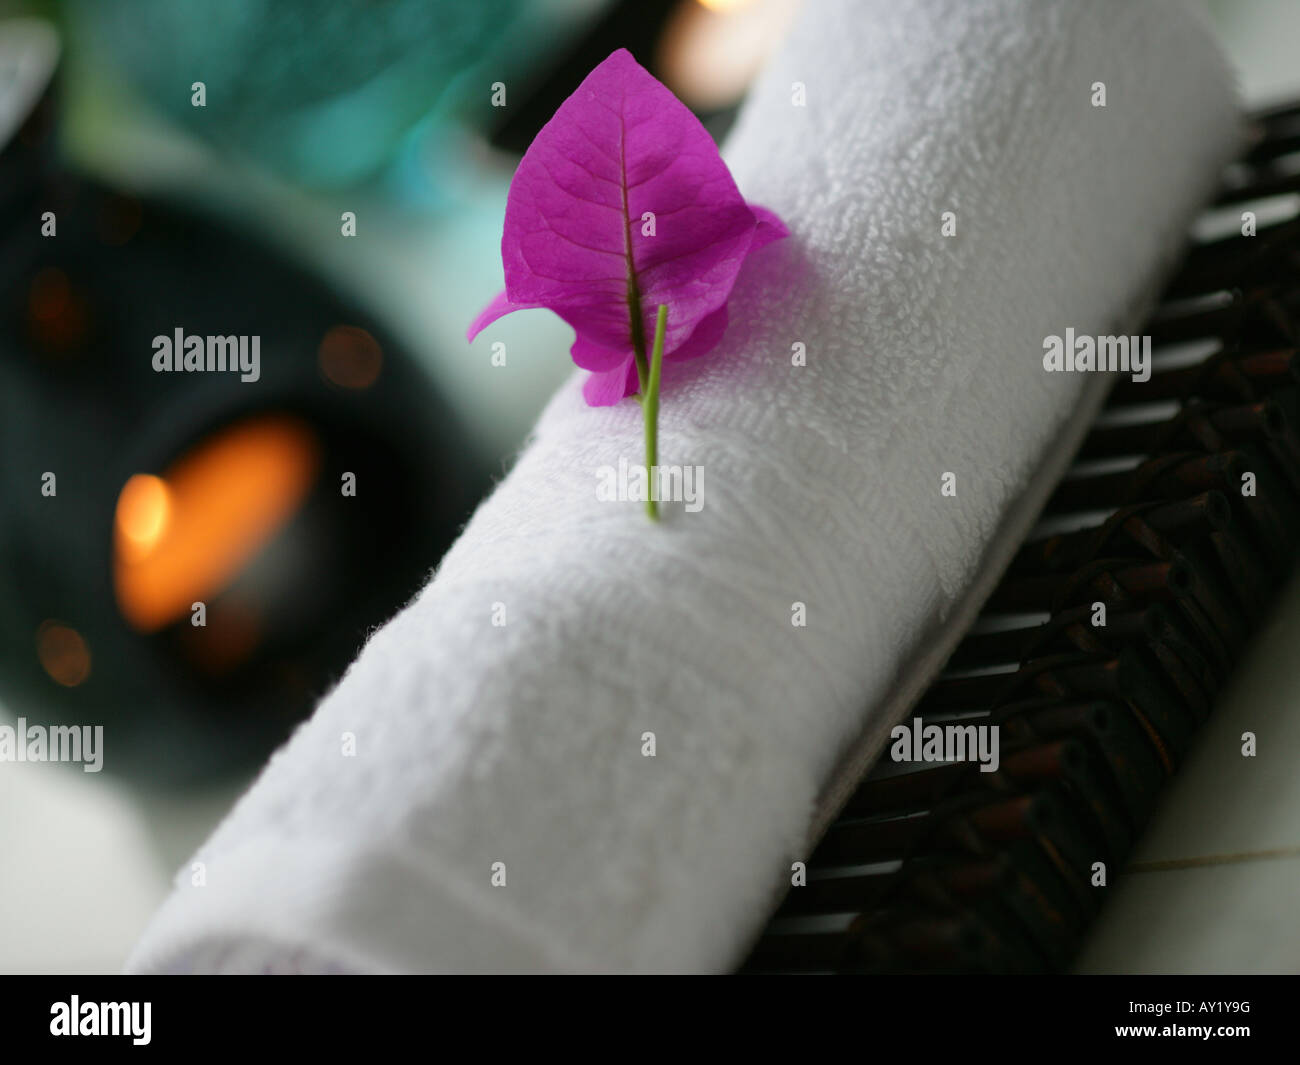 Close-up of a flower (Bougainvillea) on a rolled up towel Stock Photo